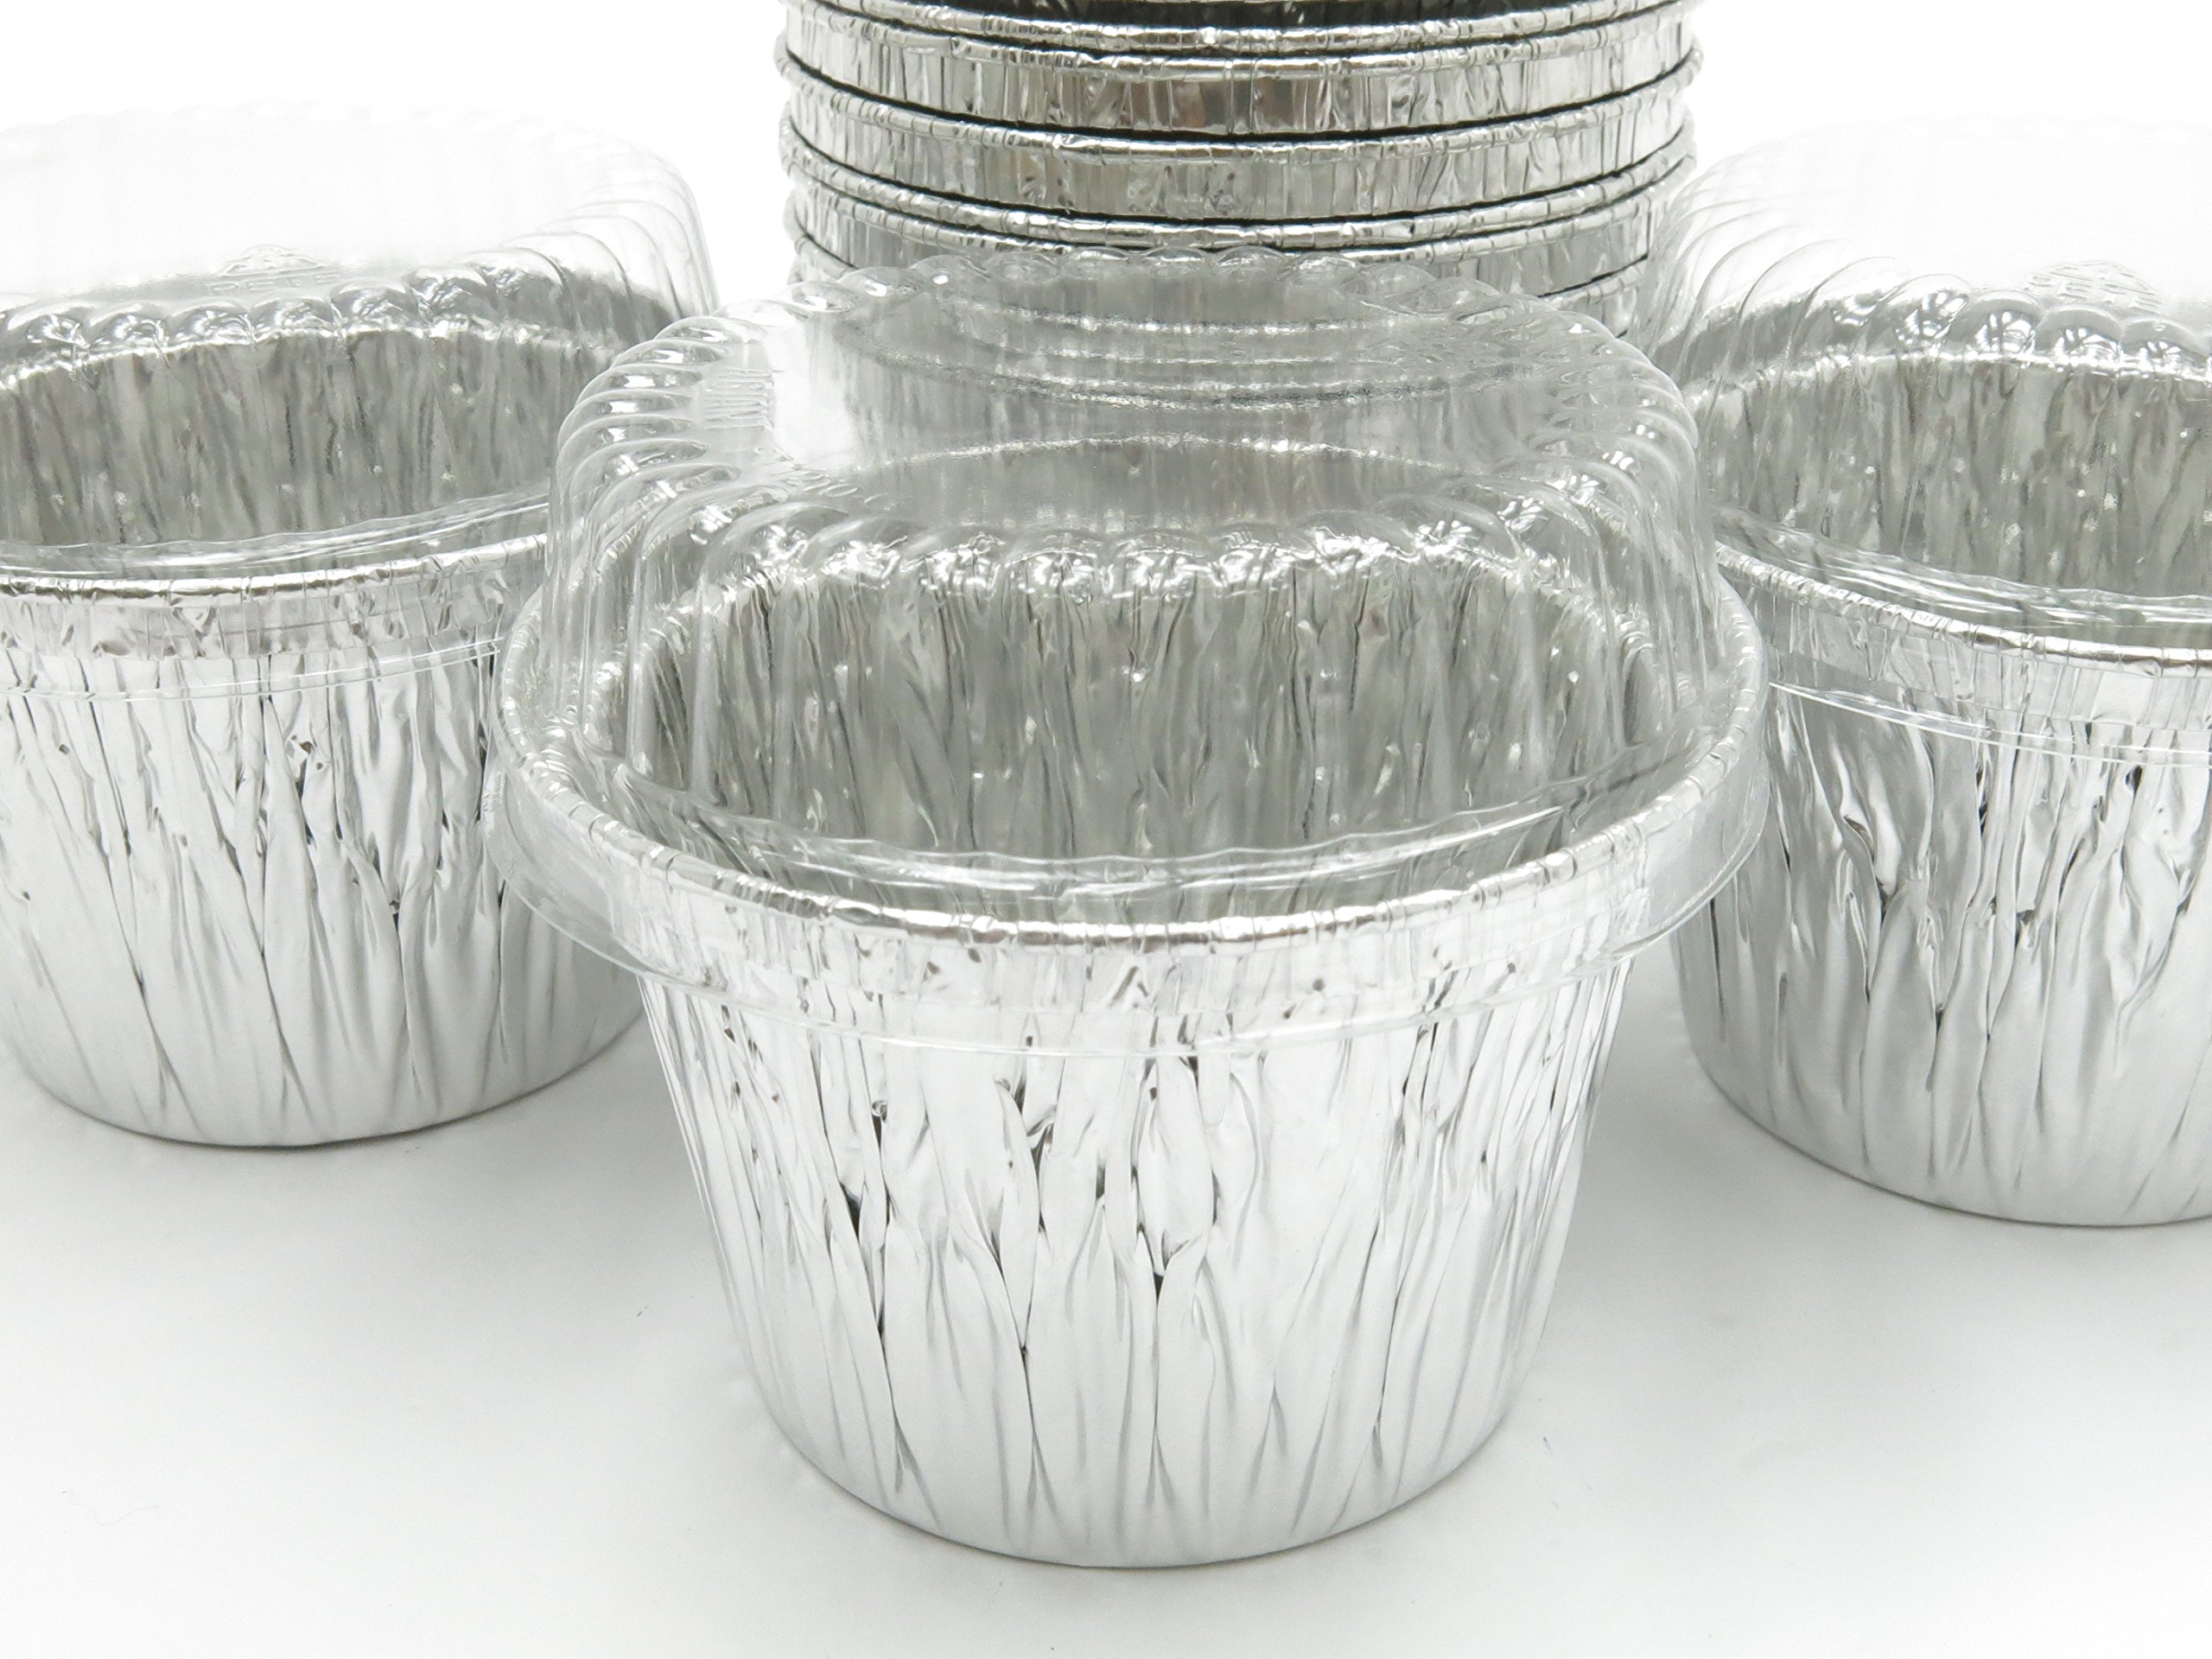 Disposable Aluminum 7 oz. Baking Cups/Cake Cups/Dessert Cups #1210P (500)